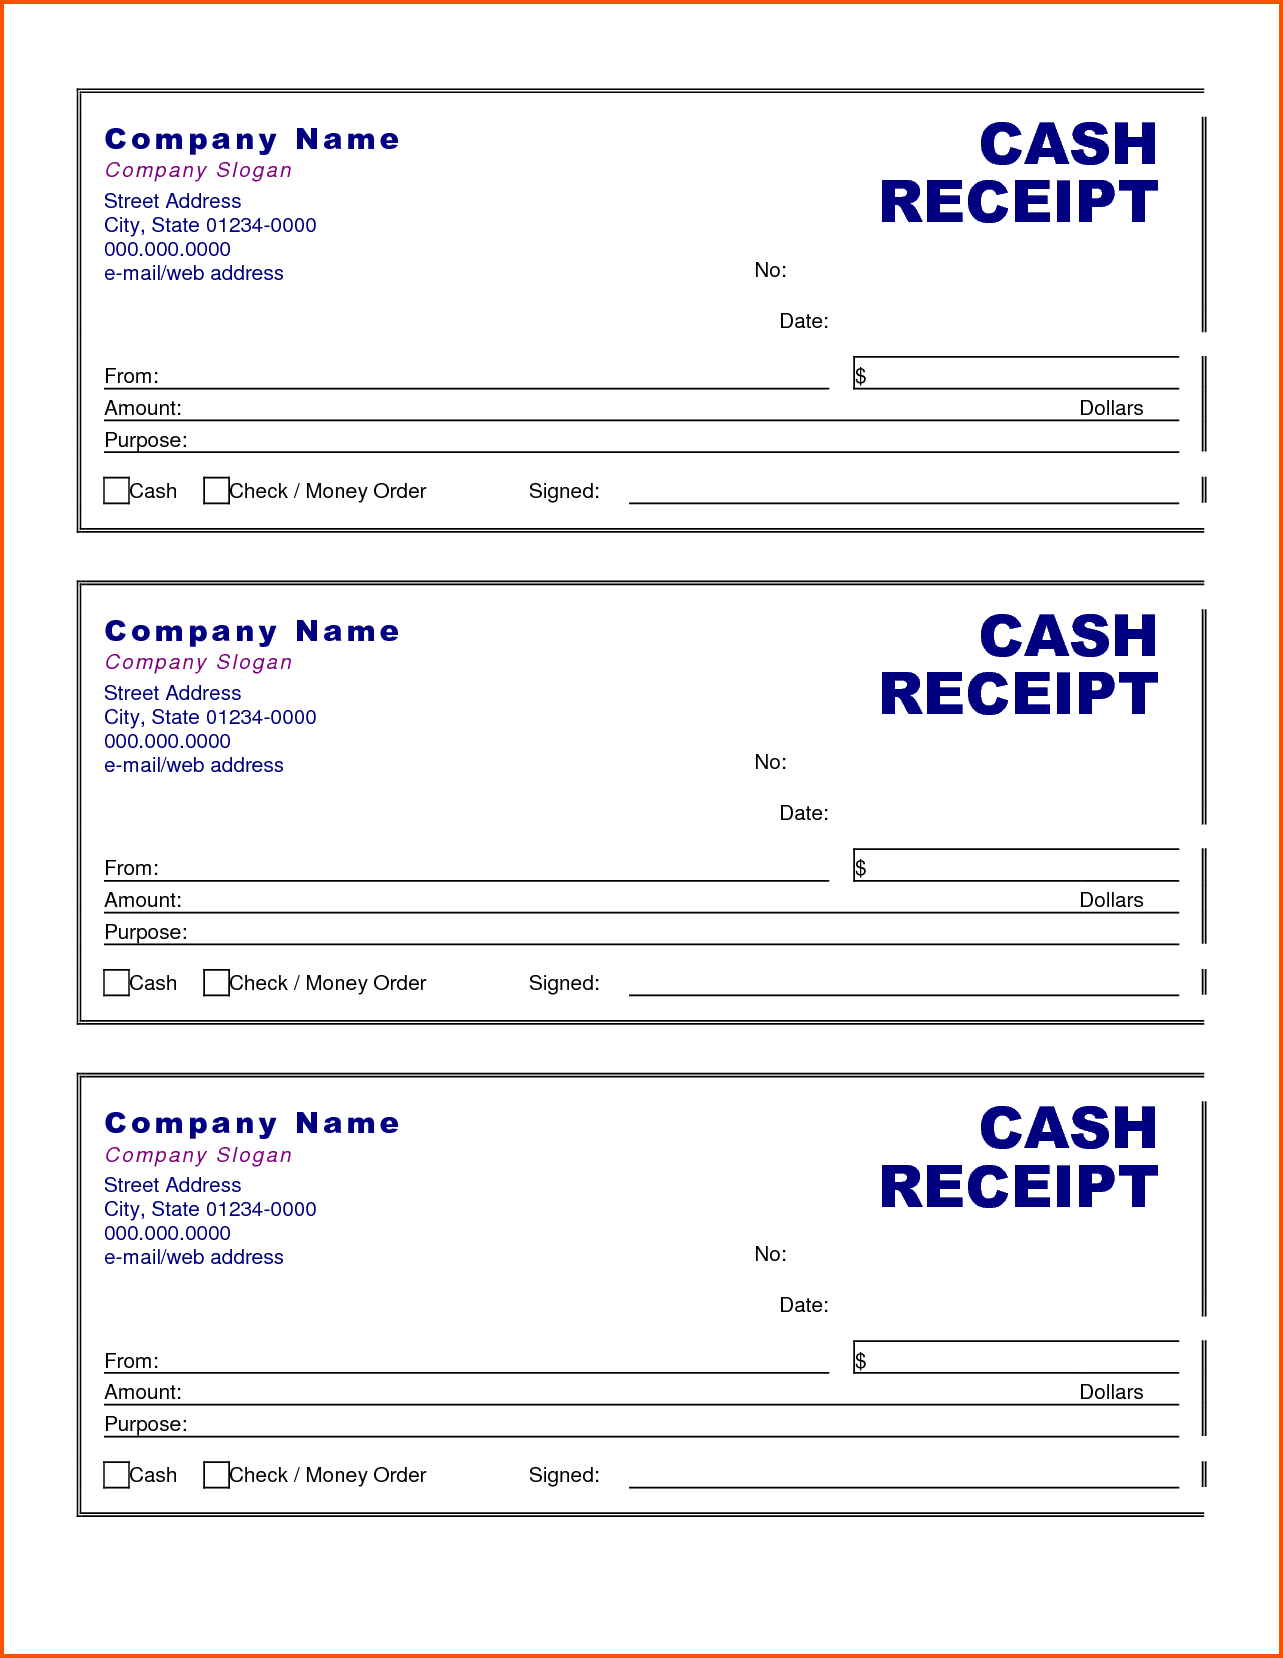 Company Invoice Template Excel and Cash Receipt Template Selimtd